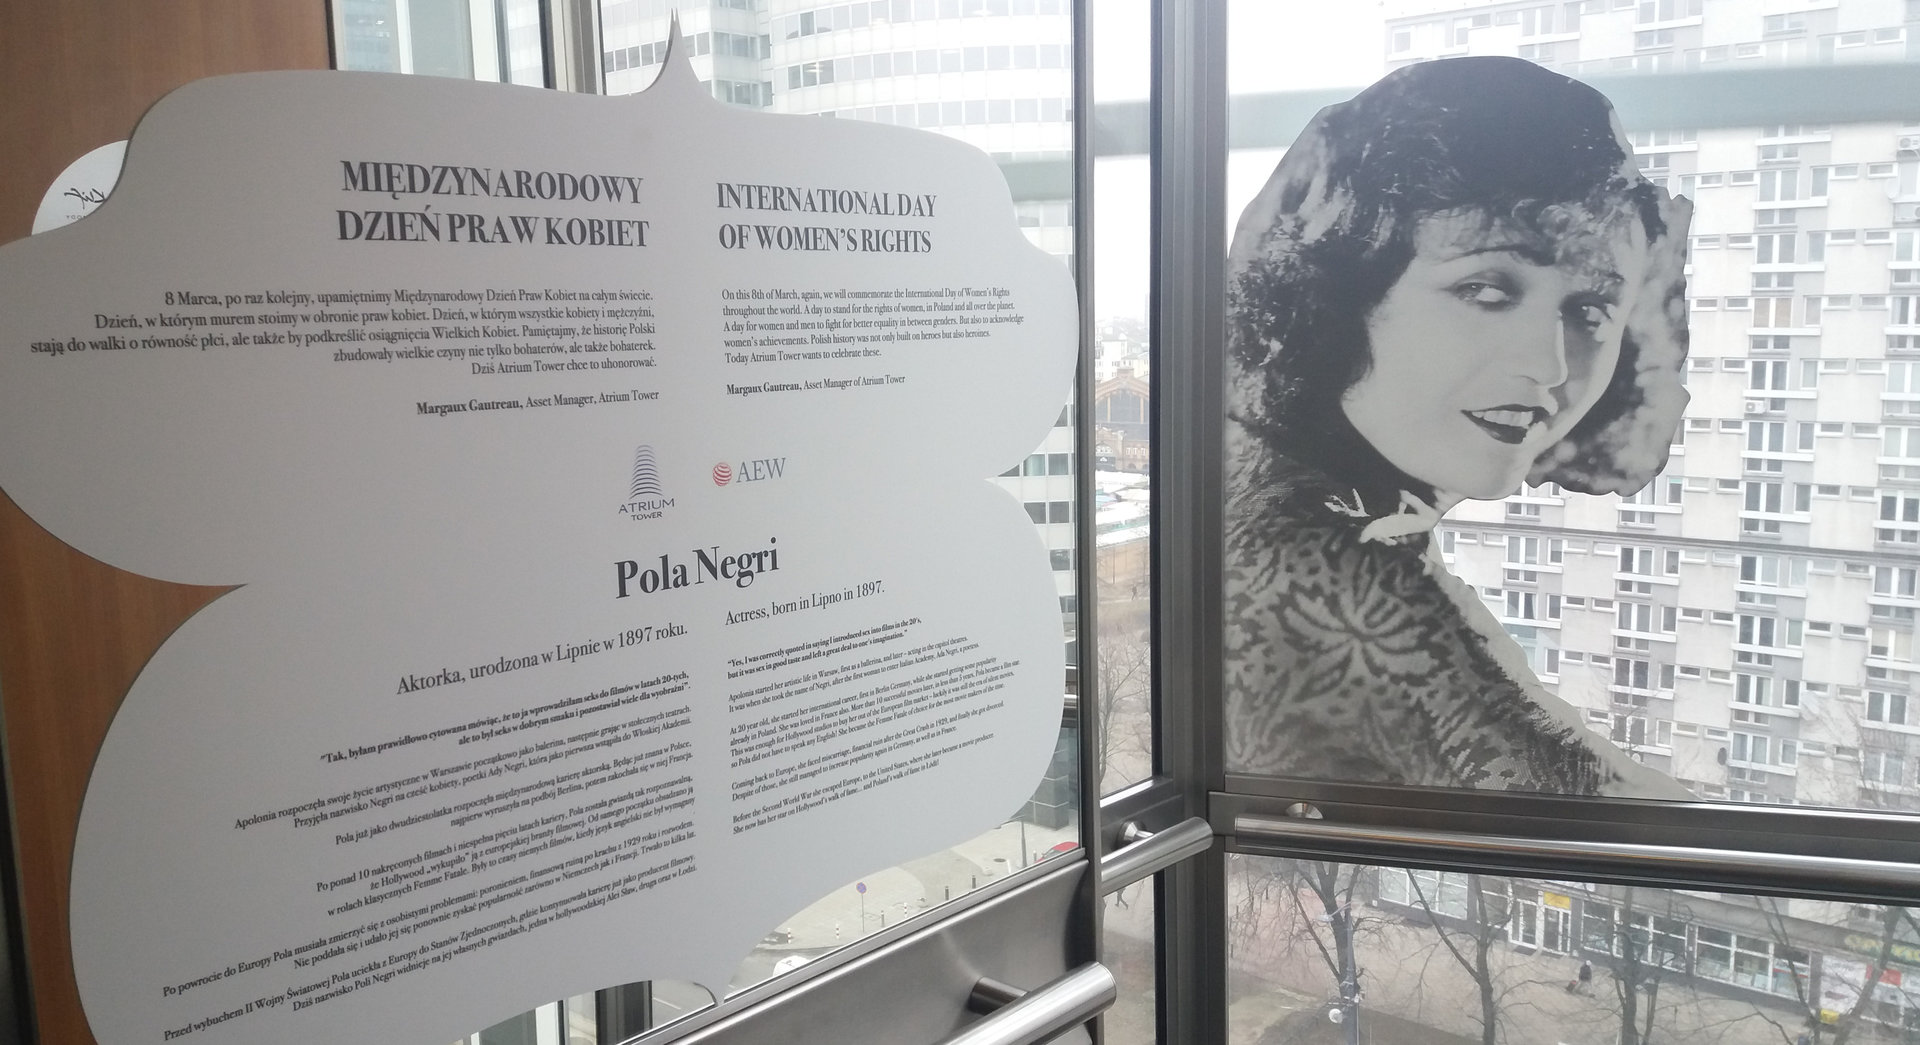 Famous Polish women at Atrium Tower for International Fay for Women's Rights